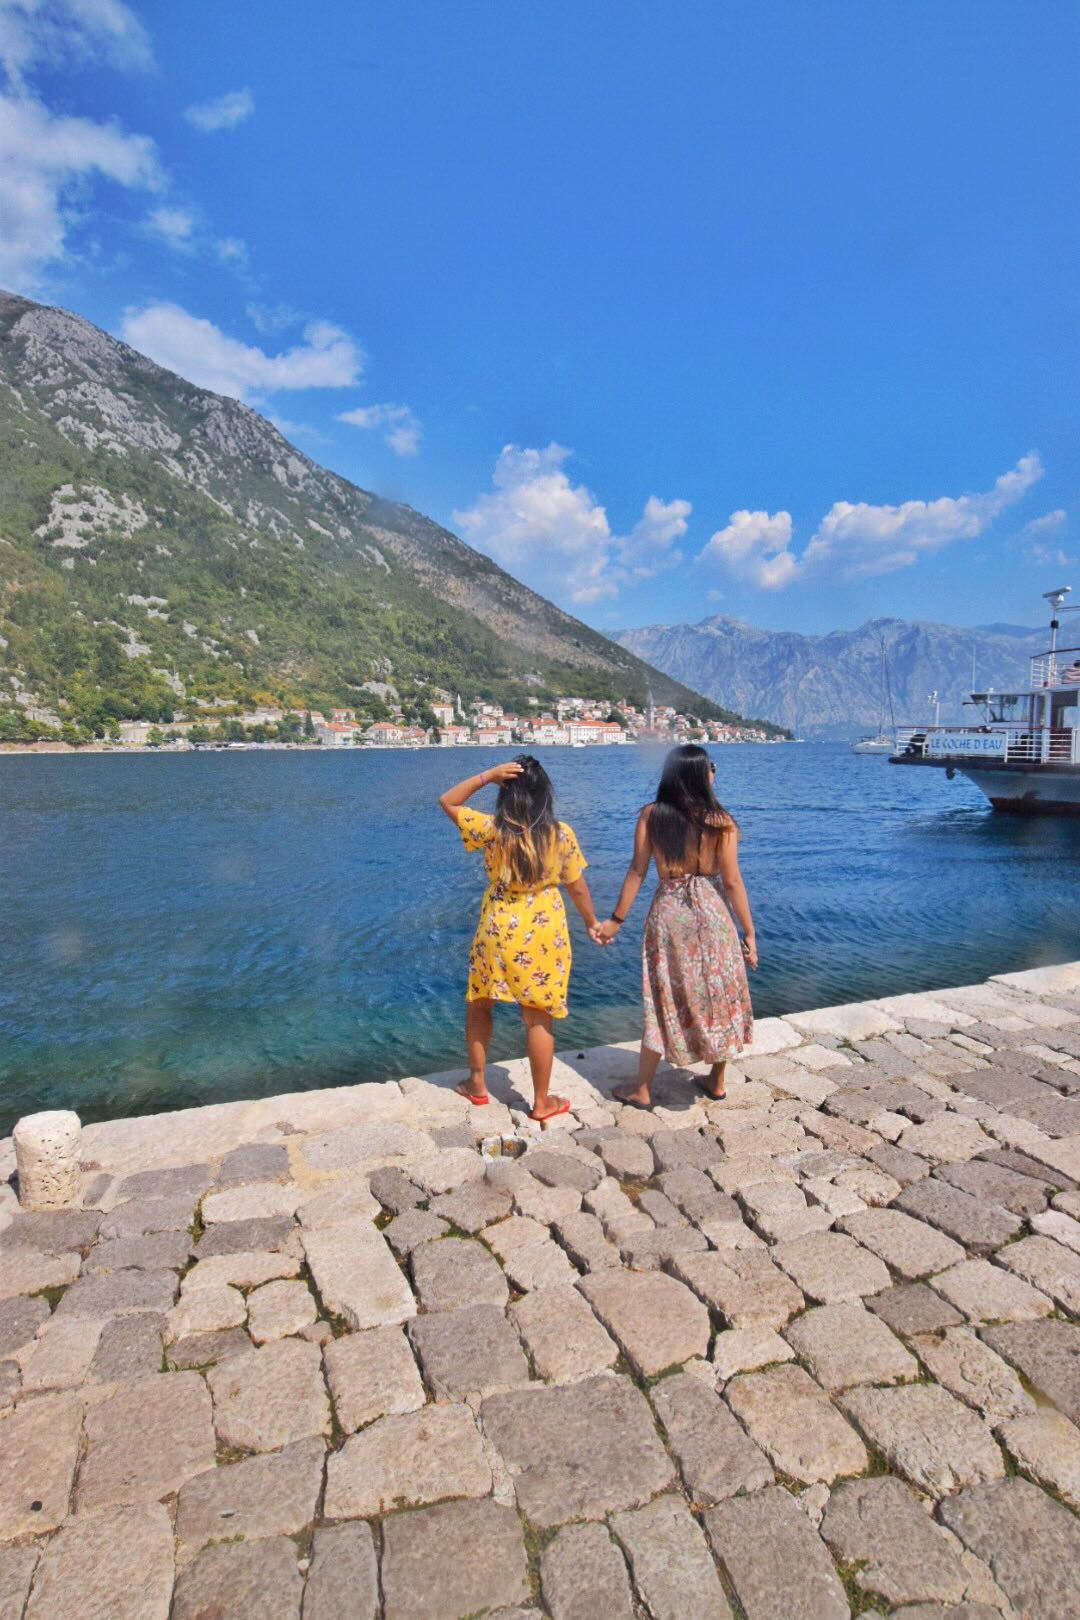 Kach Solo Travels Day 7 to 10: Twinning with my younger sister, Krista, here in HERCEG NOVI, Montenegro!